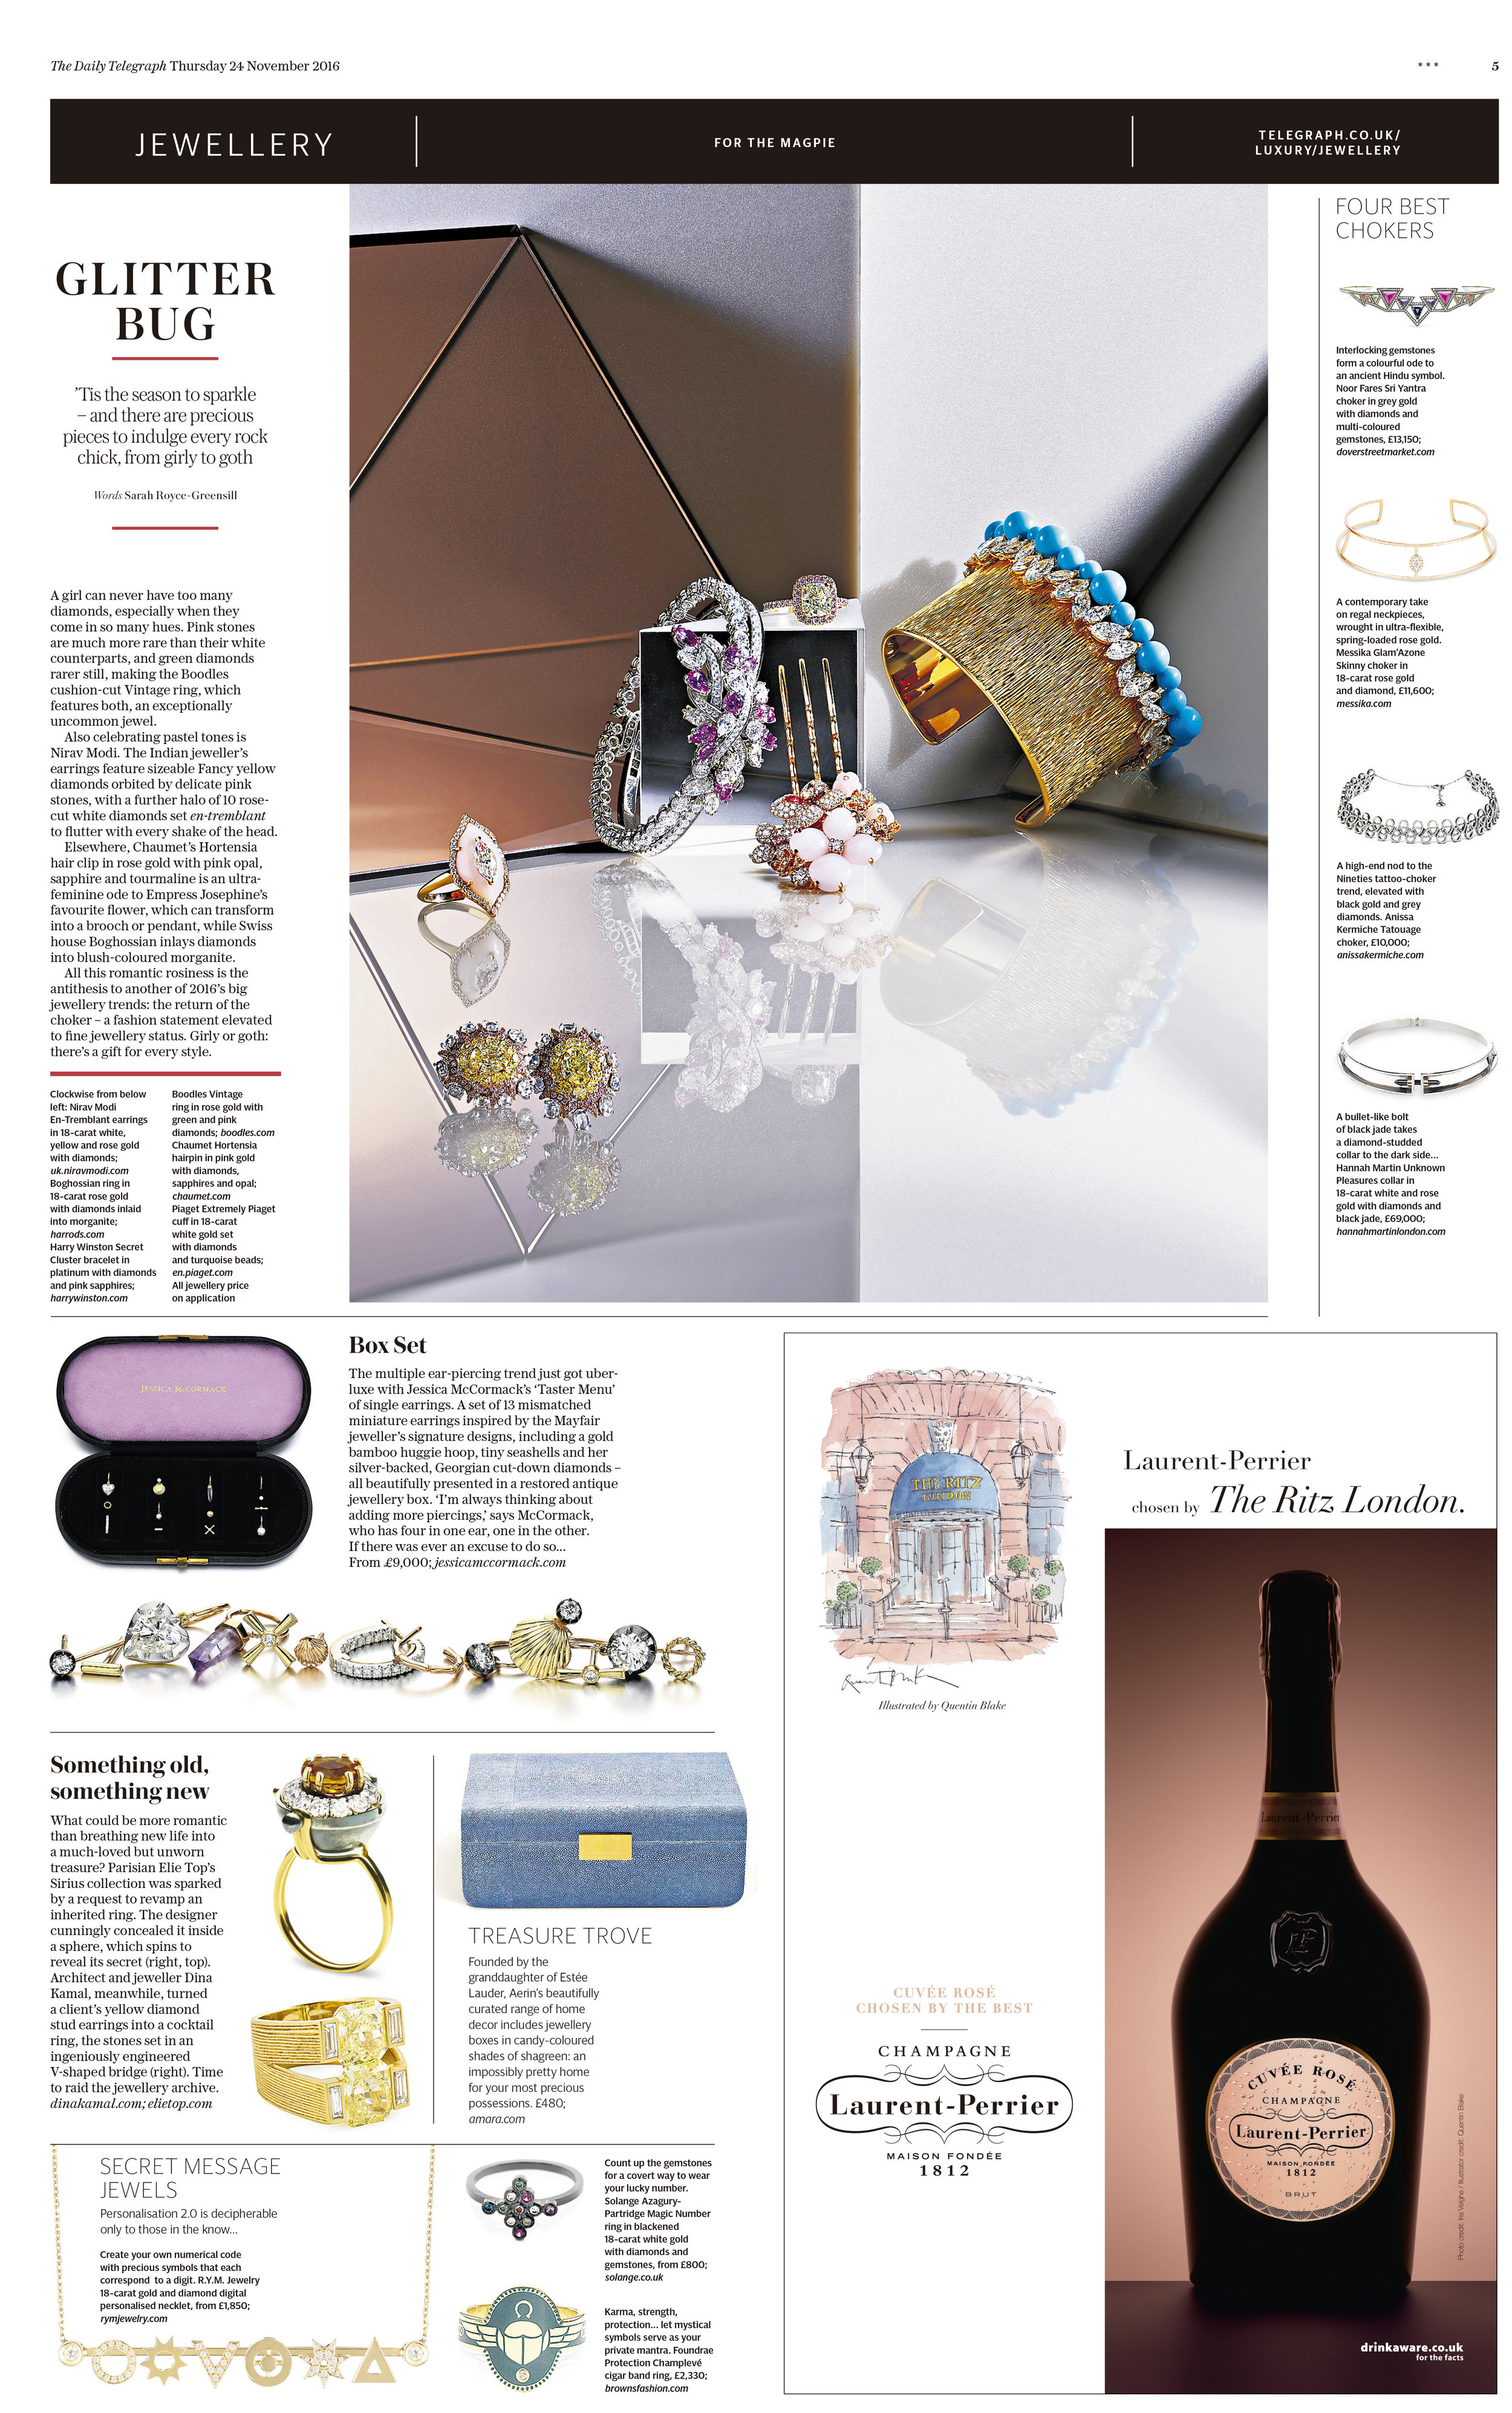 The Daily Telegraph Luxury - Christmas Gift Guide (2).jpg